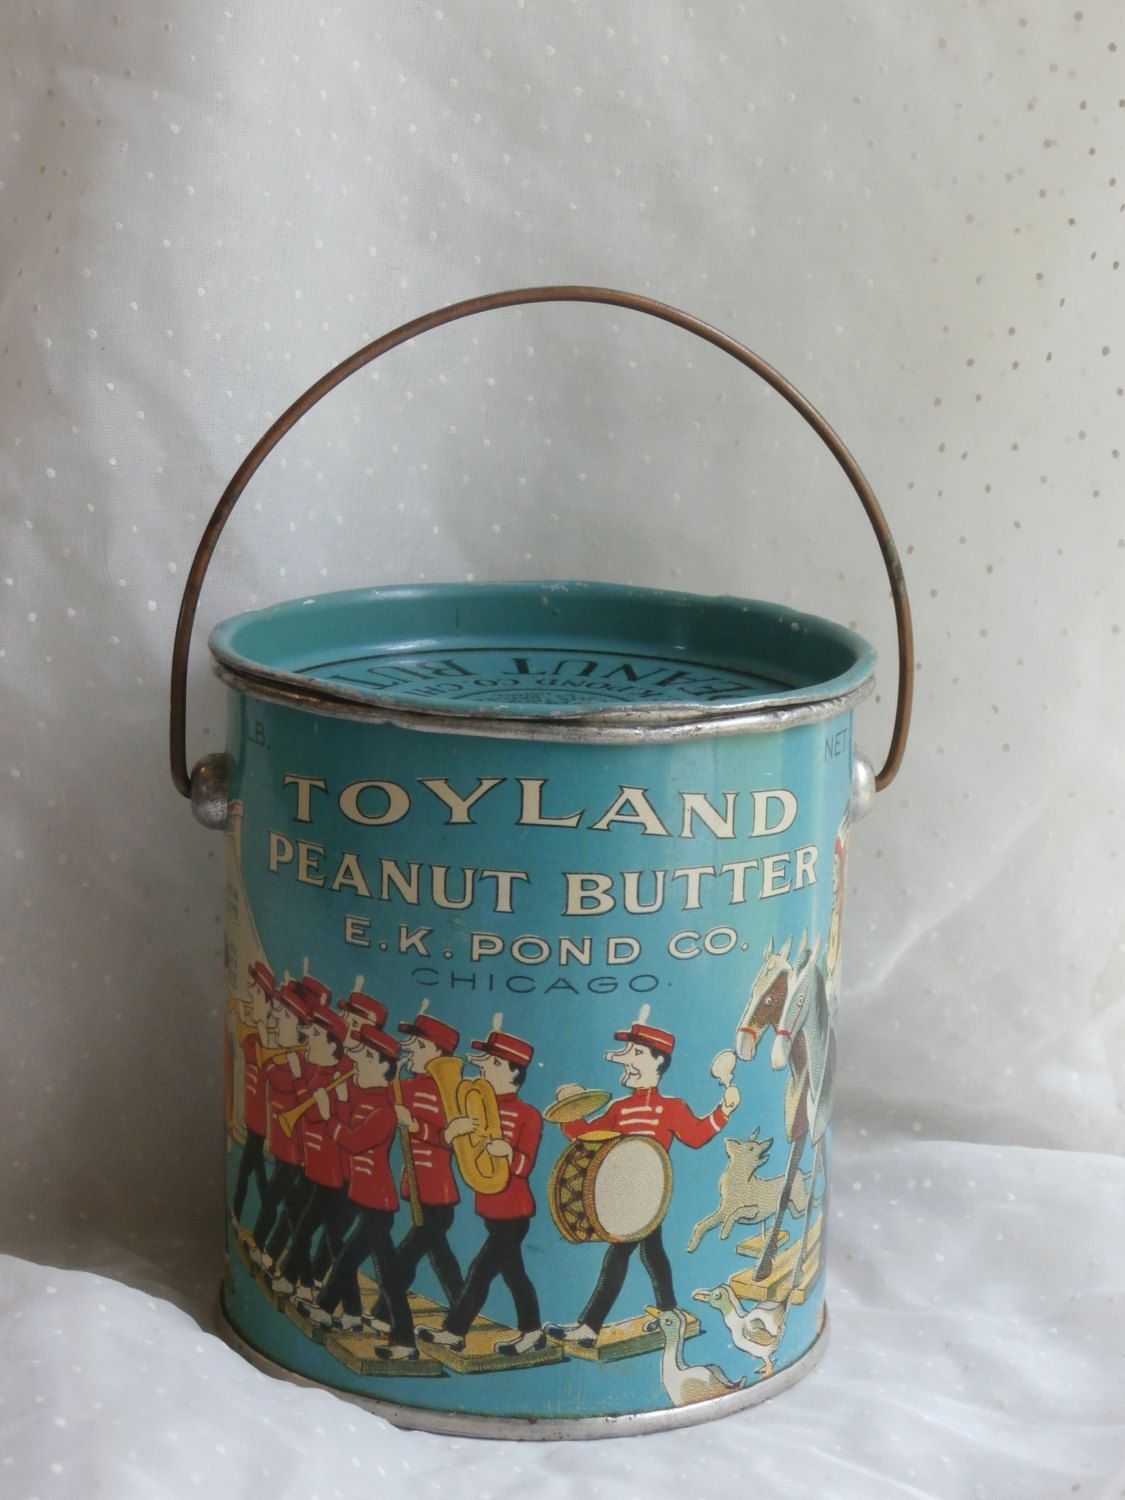 Toyland Peanut Butter Bail Handle Tin Pail, E K Pond Co, Chicago - JUST  LISTED